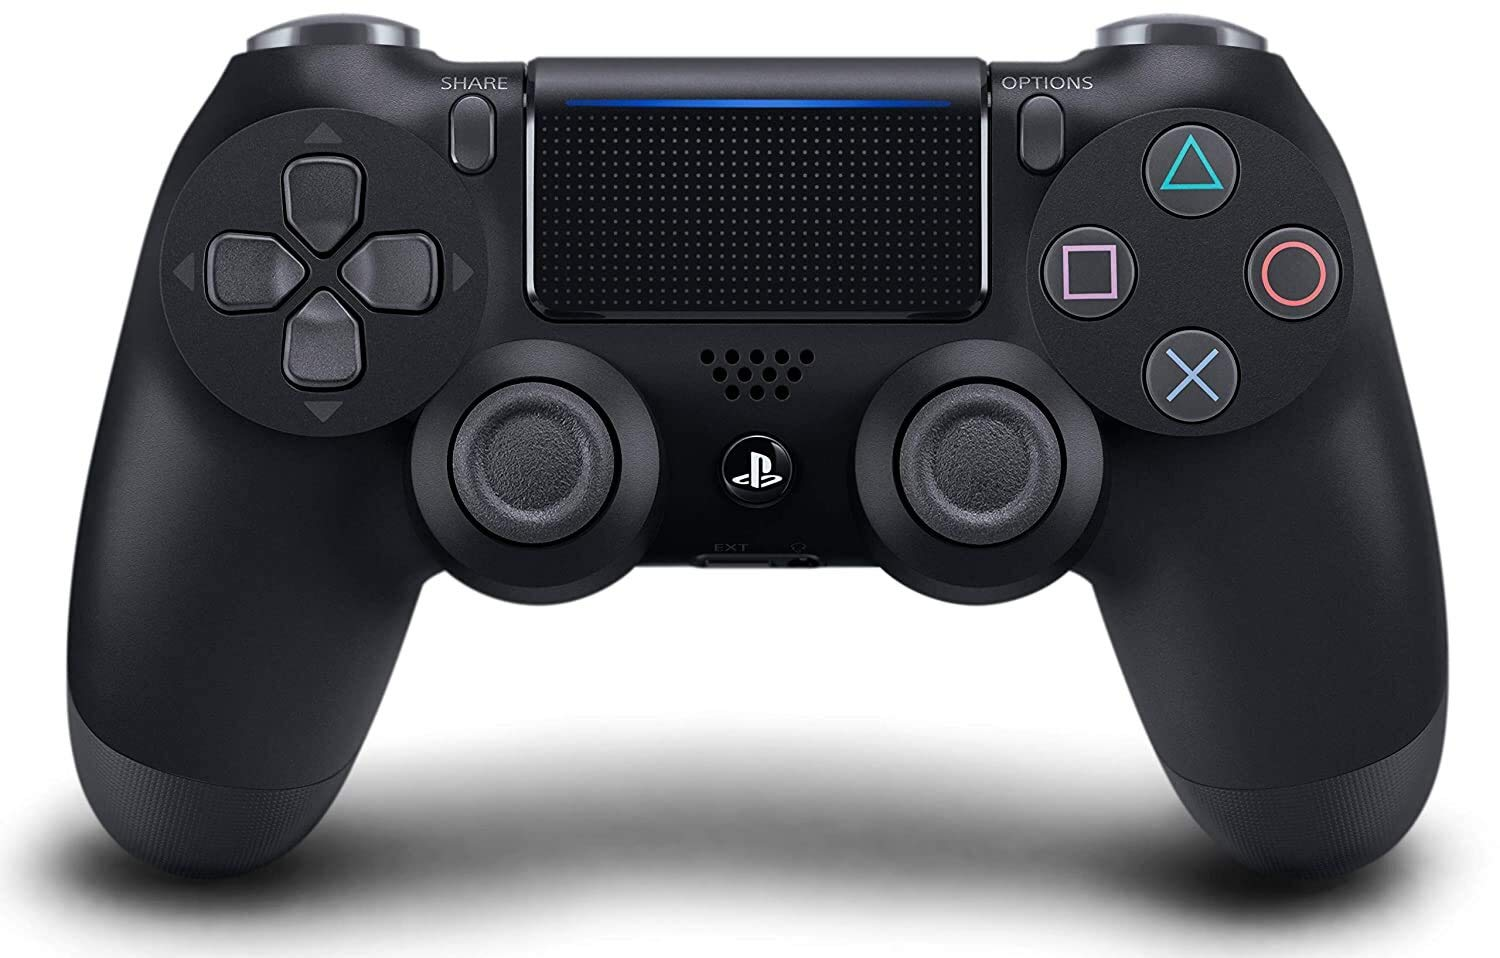 Dualshock 4 Wireless Controller Playstation 4 Black V2